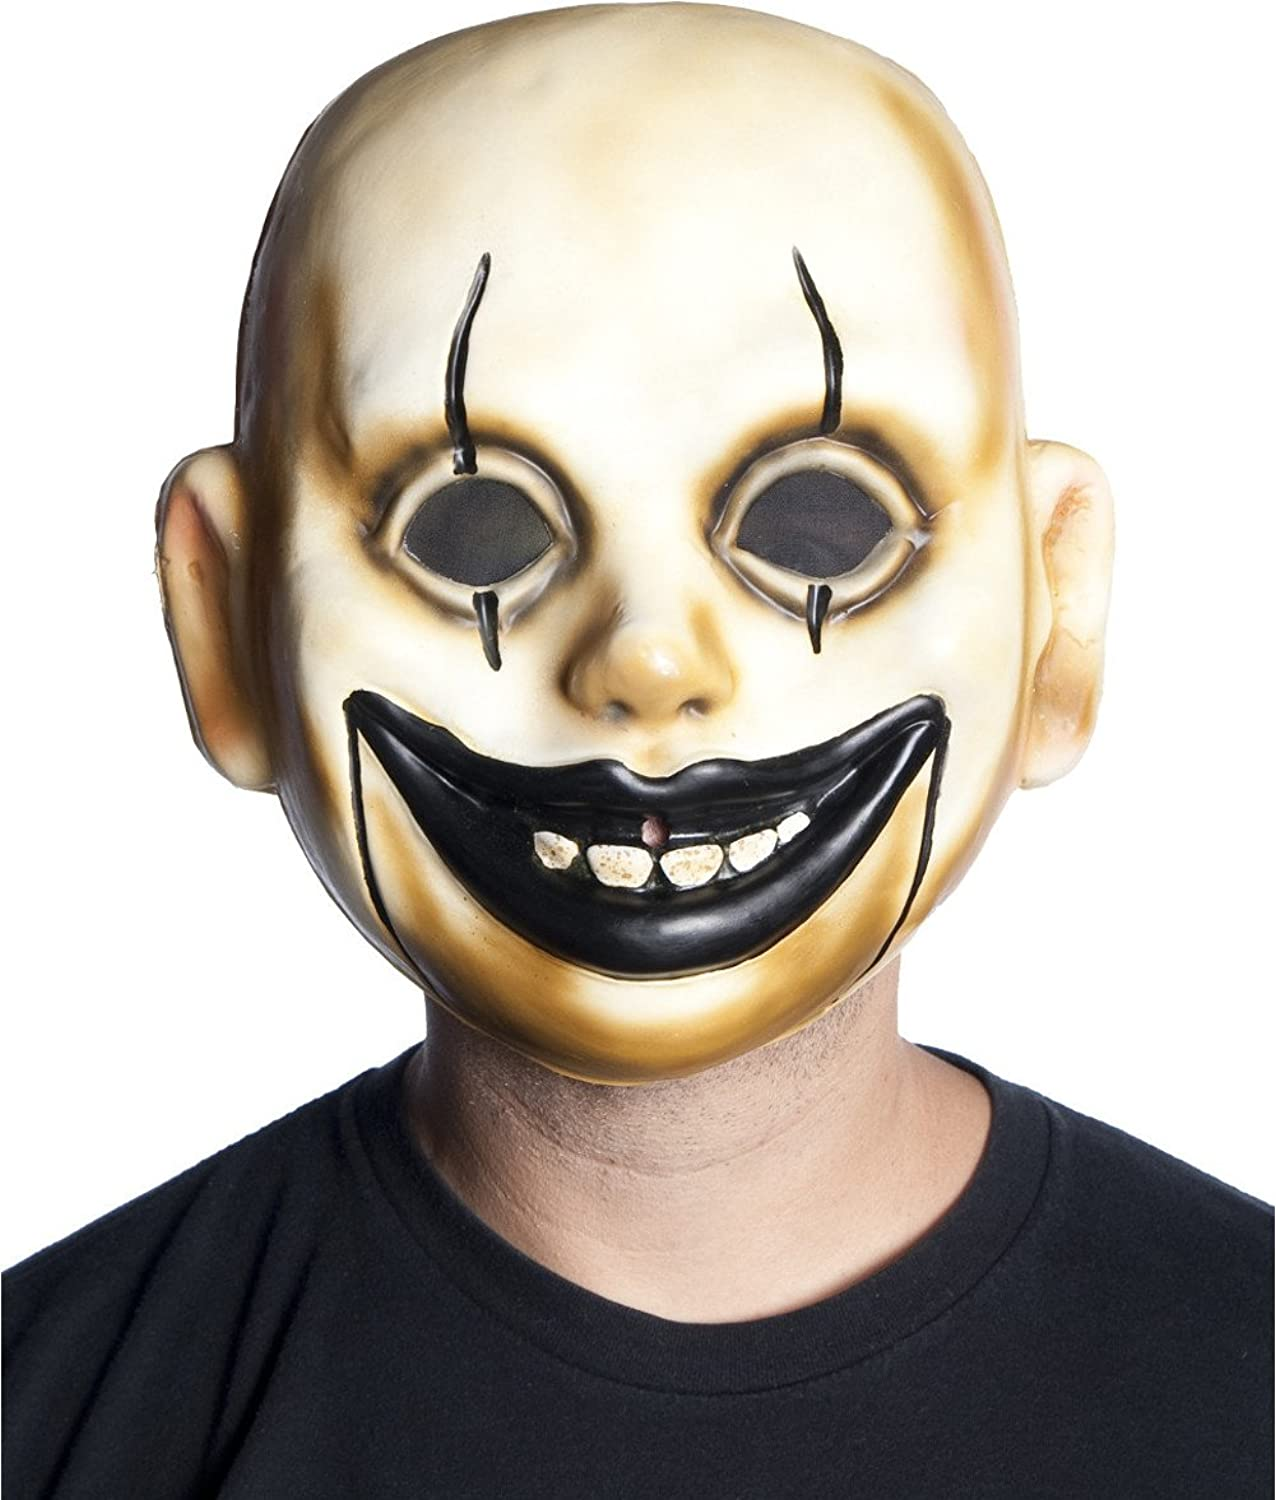 amazoncom clown doll face mask plastic creepy smile scary halloween costume accessory clothing